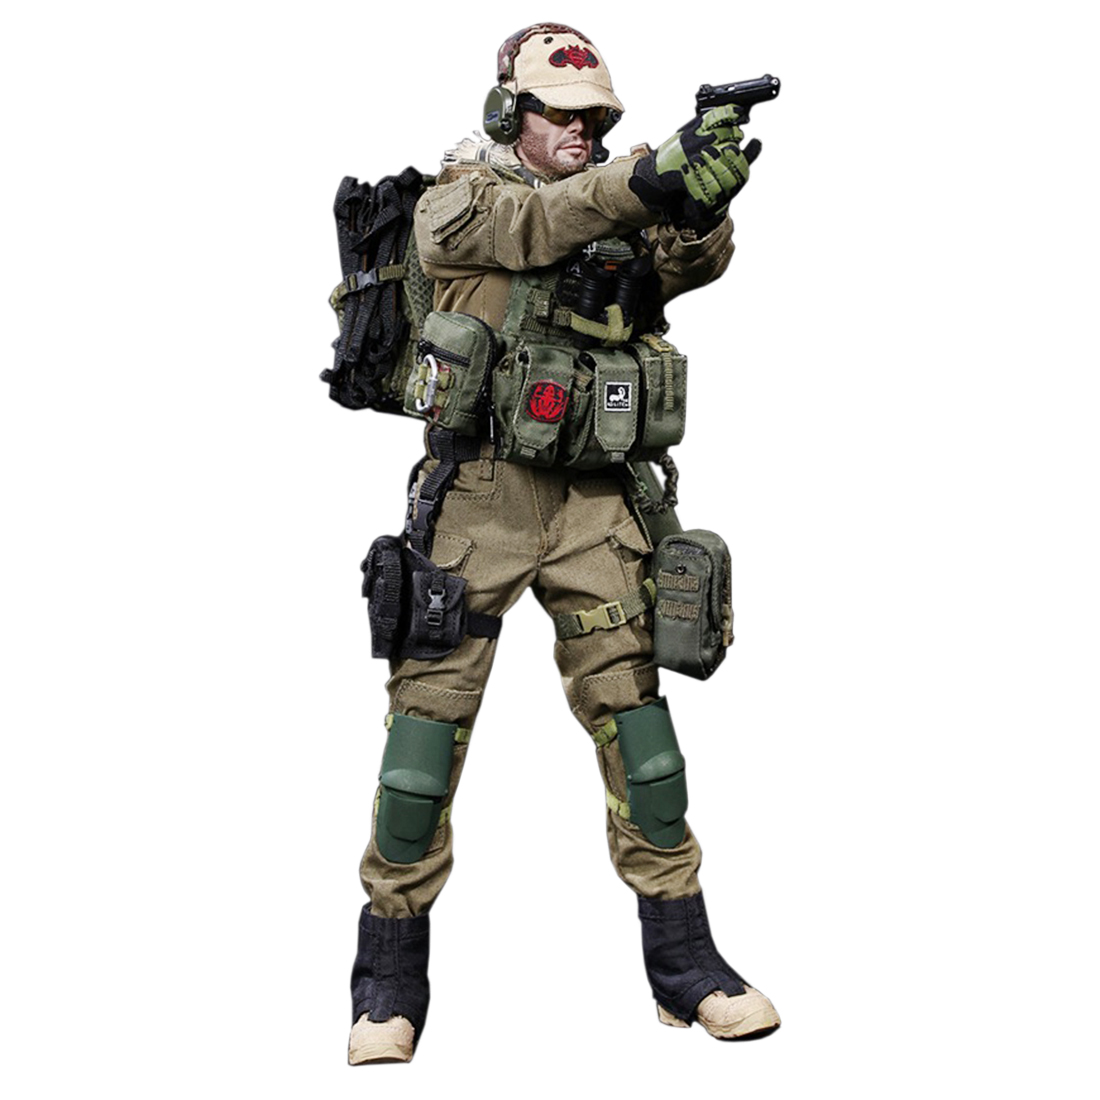 MODIKER 30cm 1 6 Special Forces Movable Figure Military Soldier Model Action Toy Figures